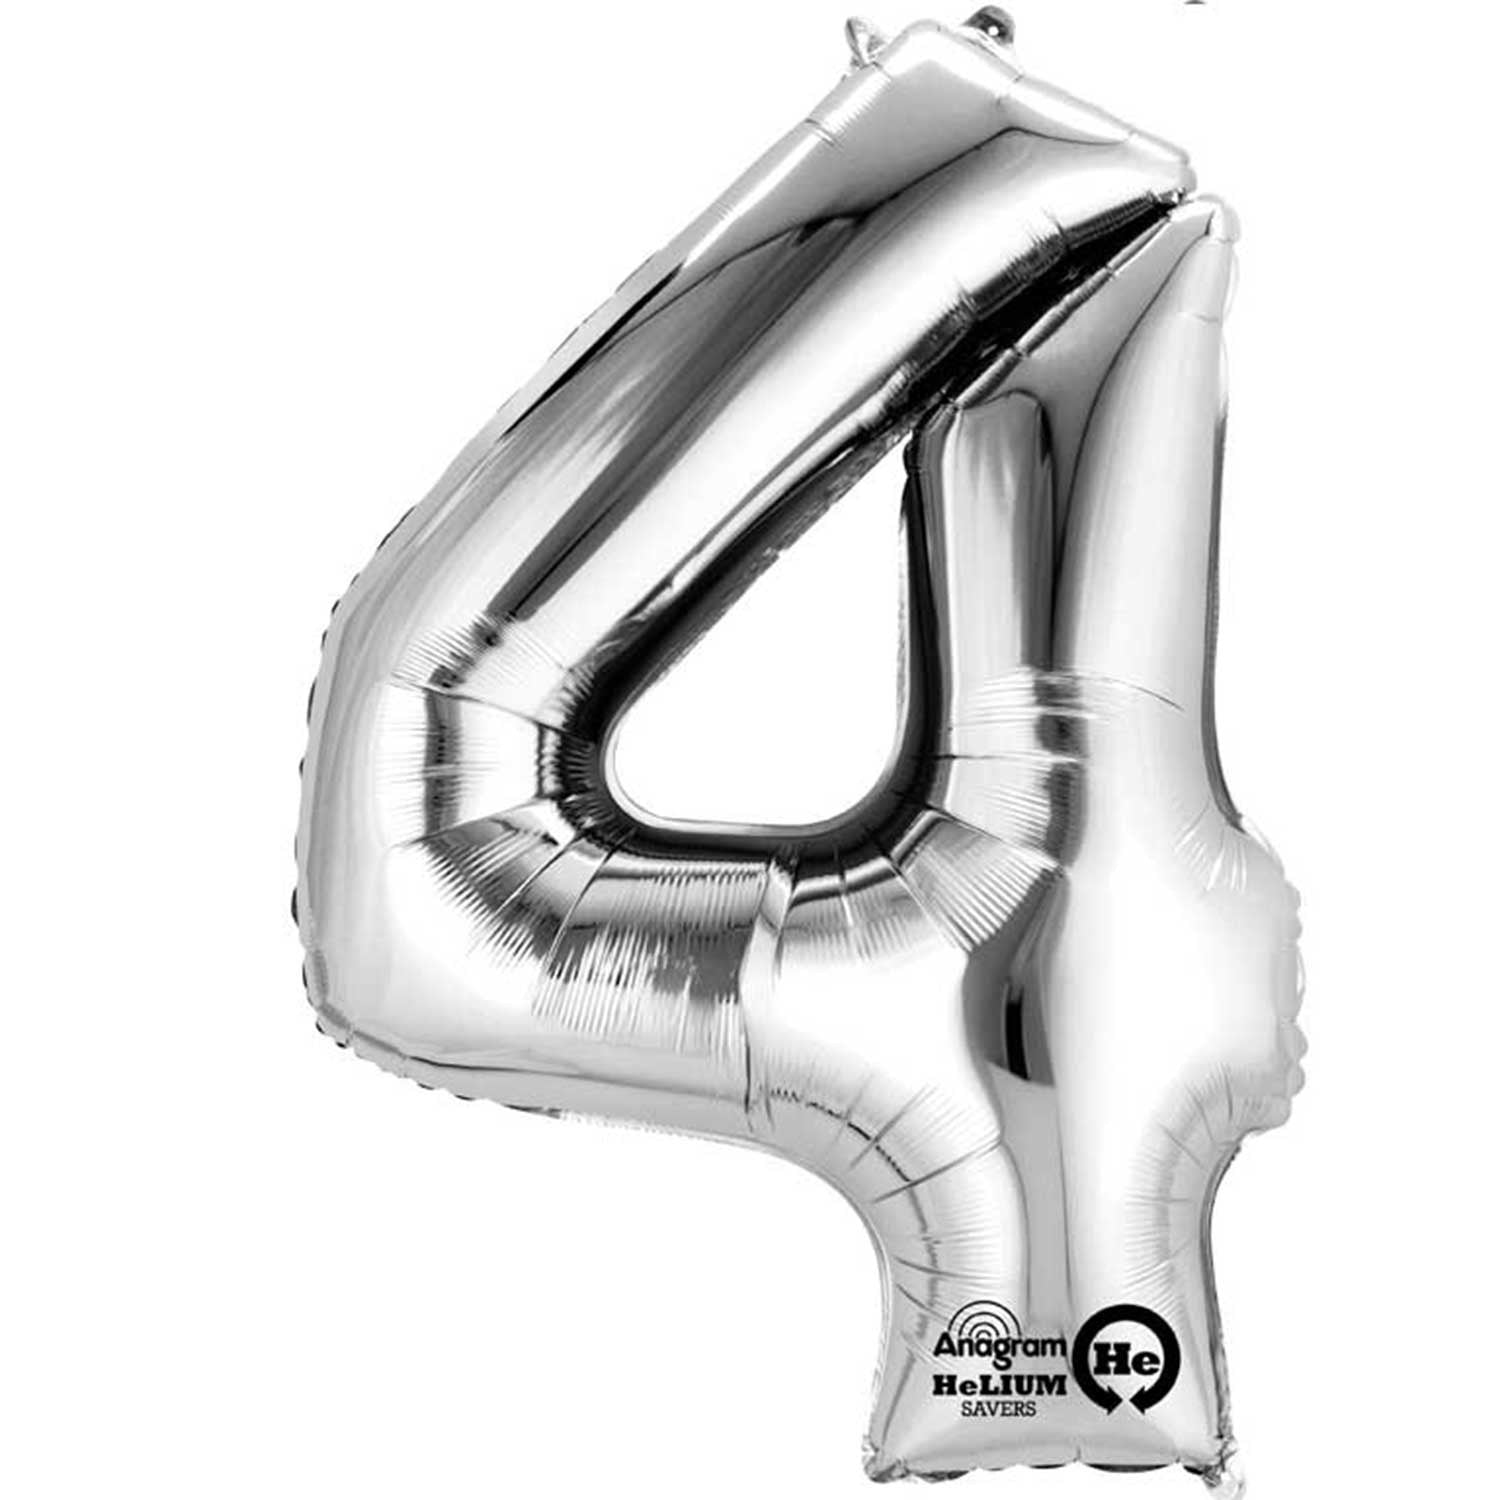 SILVER 4 LARGE NUMBER FOIL BALLOON from Flingers Party World Bristol Harbourside who offer a huge range of fancy dress costumes and partyware items